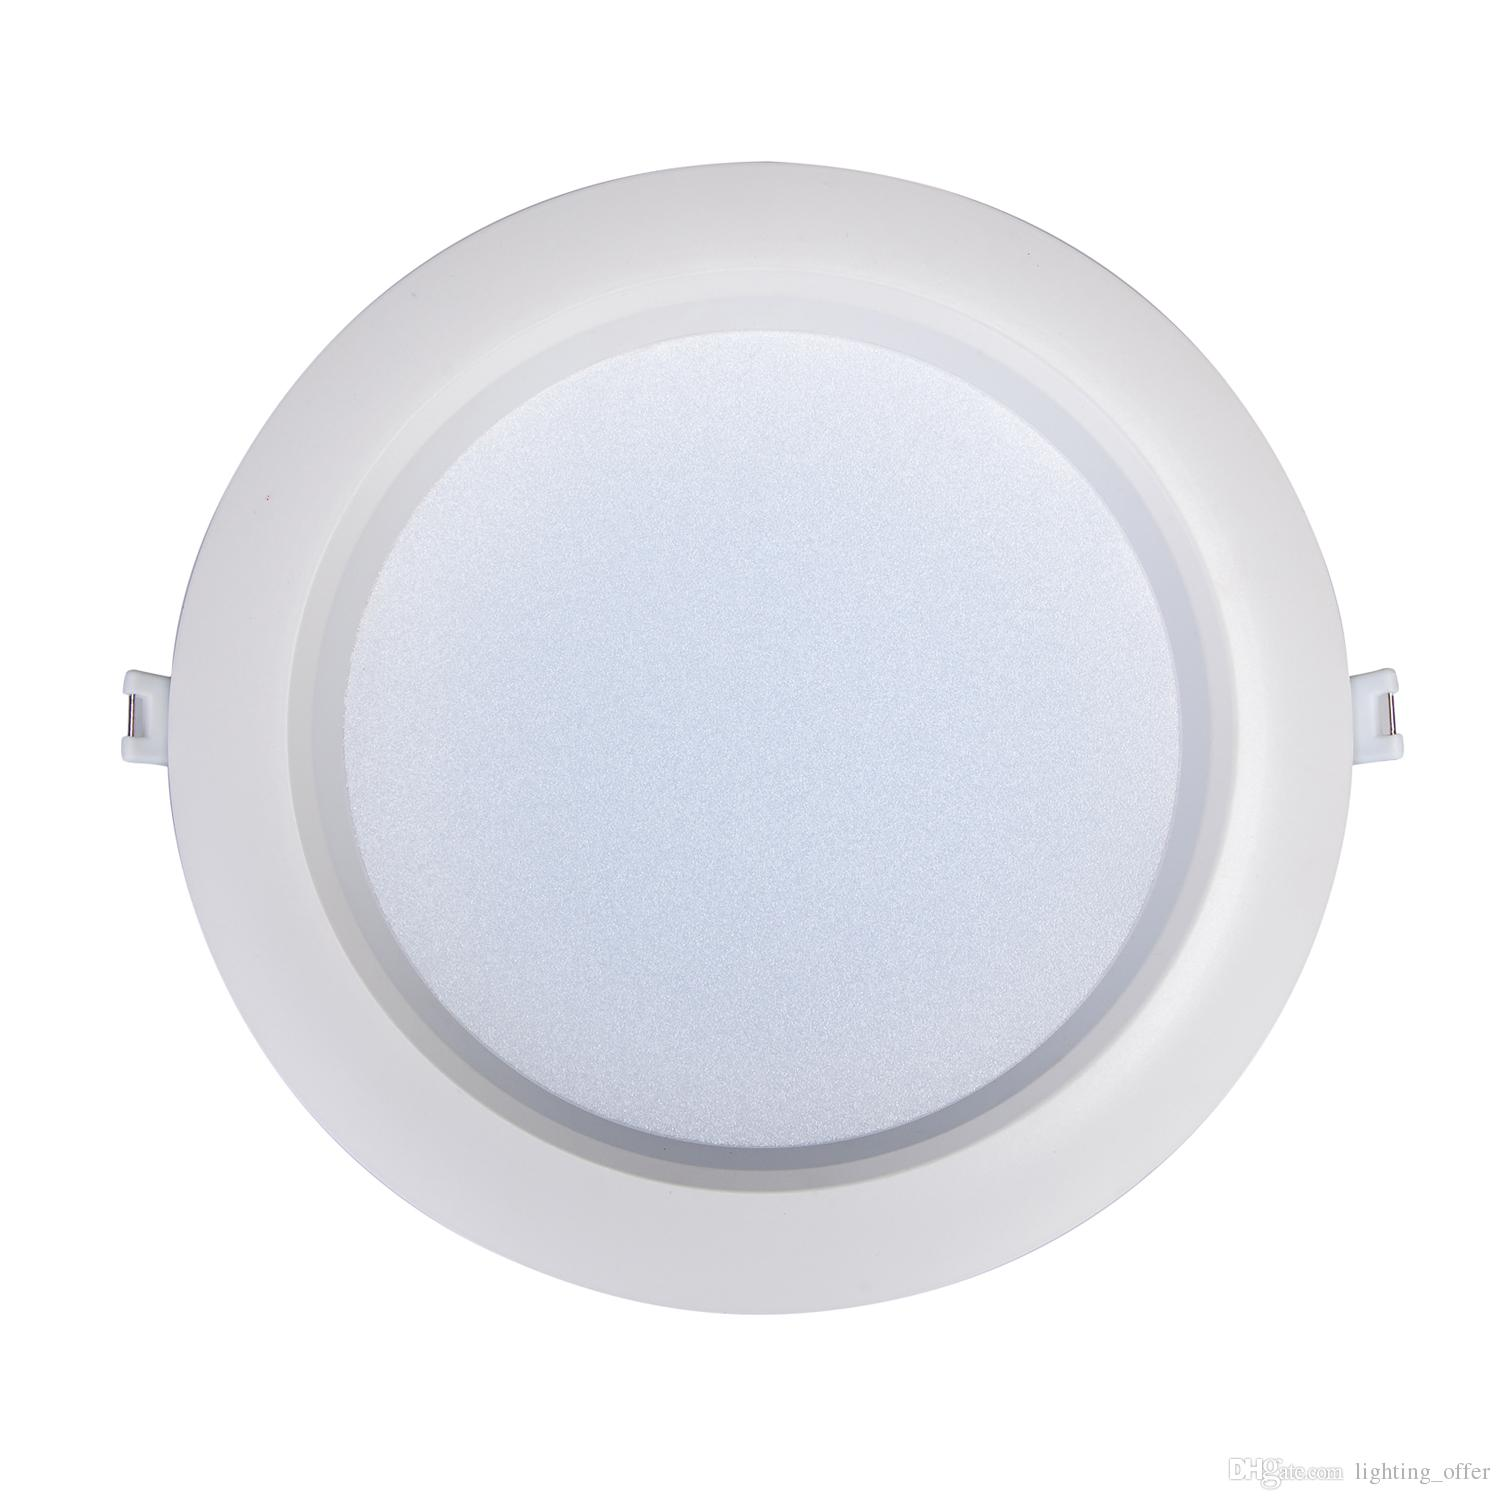 Led Kitchen Ceiling Light 24 Watt Round Led Ceiling Light Recessed Kitchen Bathroom Lamp